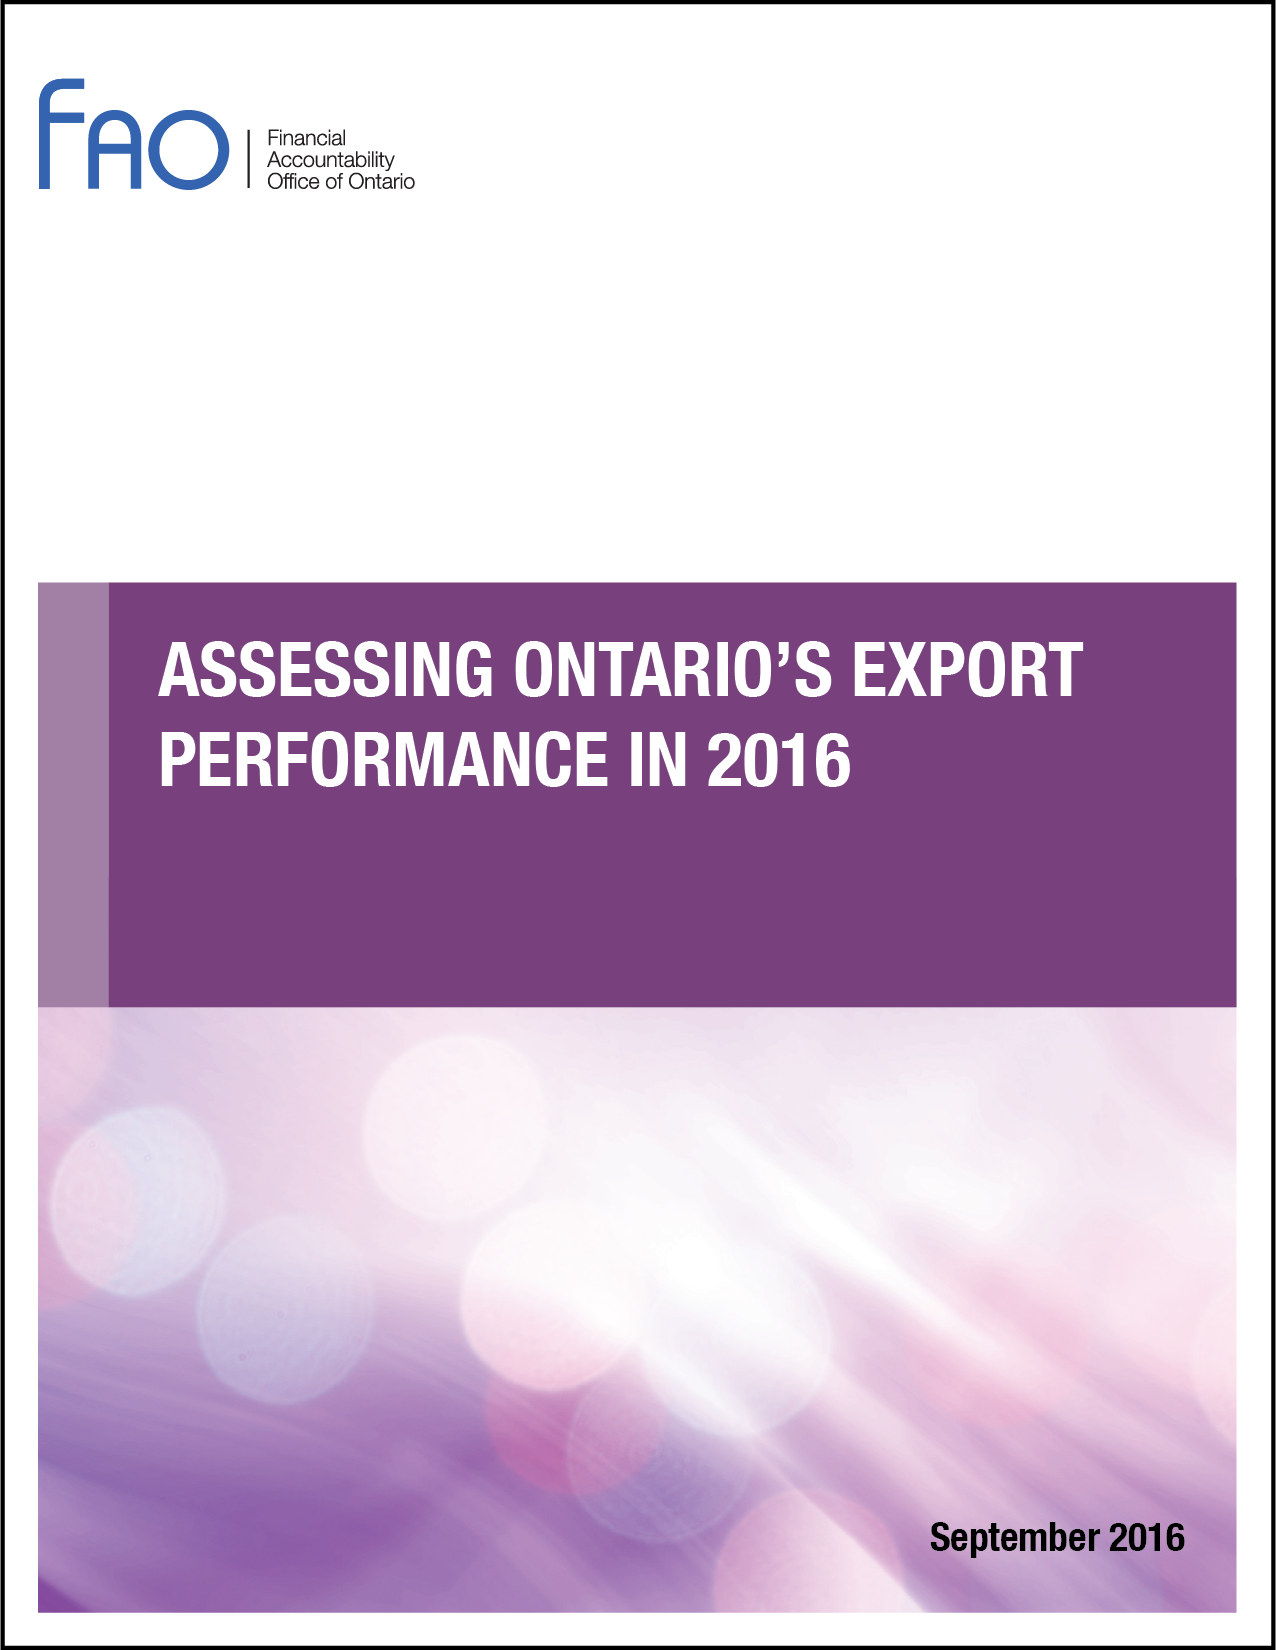 Assessing Ontario's Export Performance in 2016